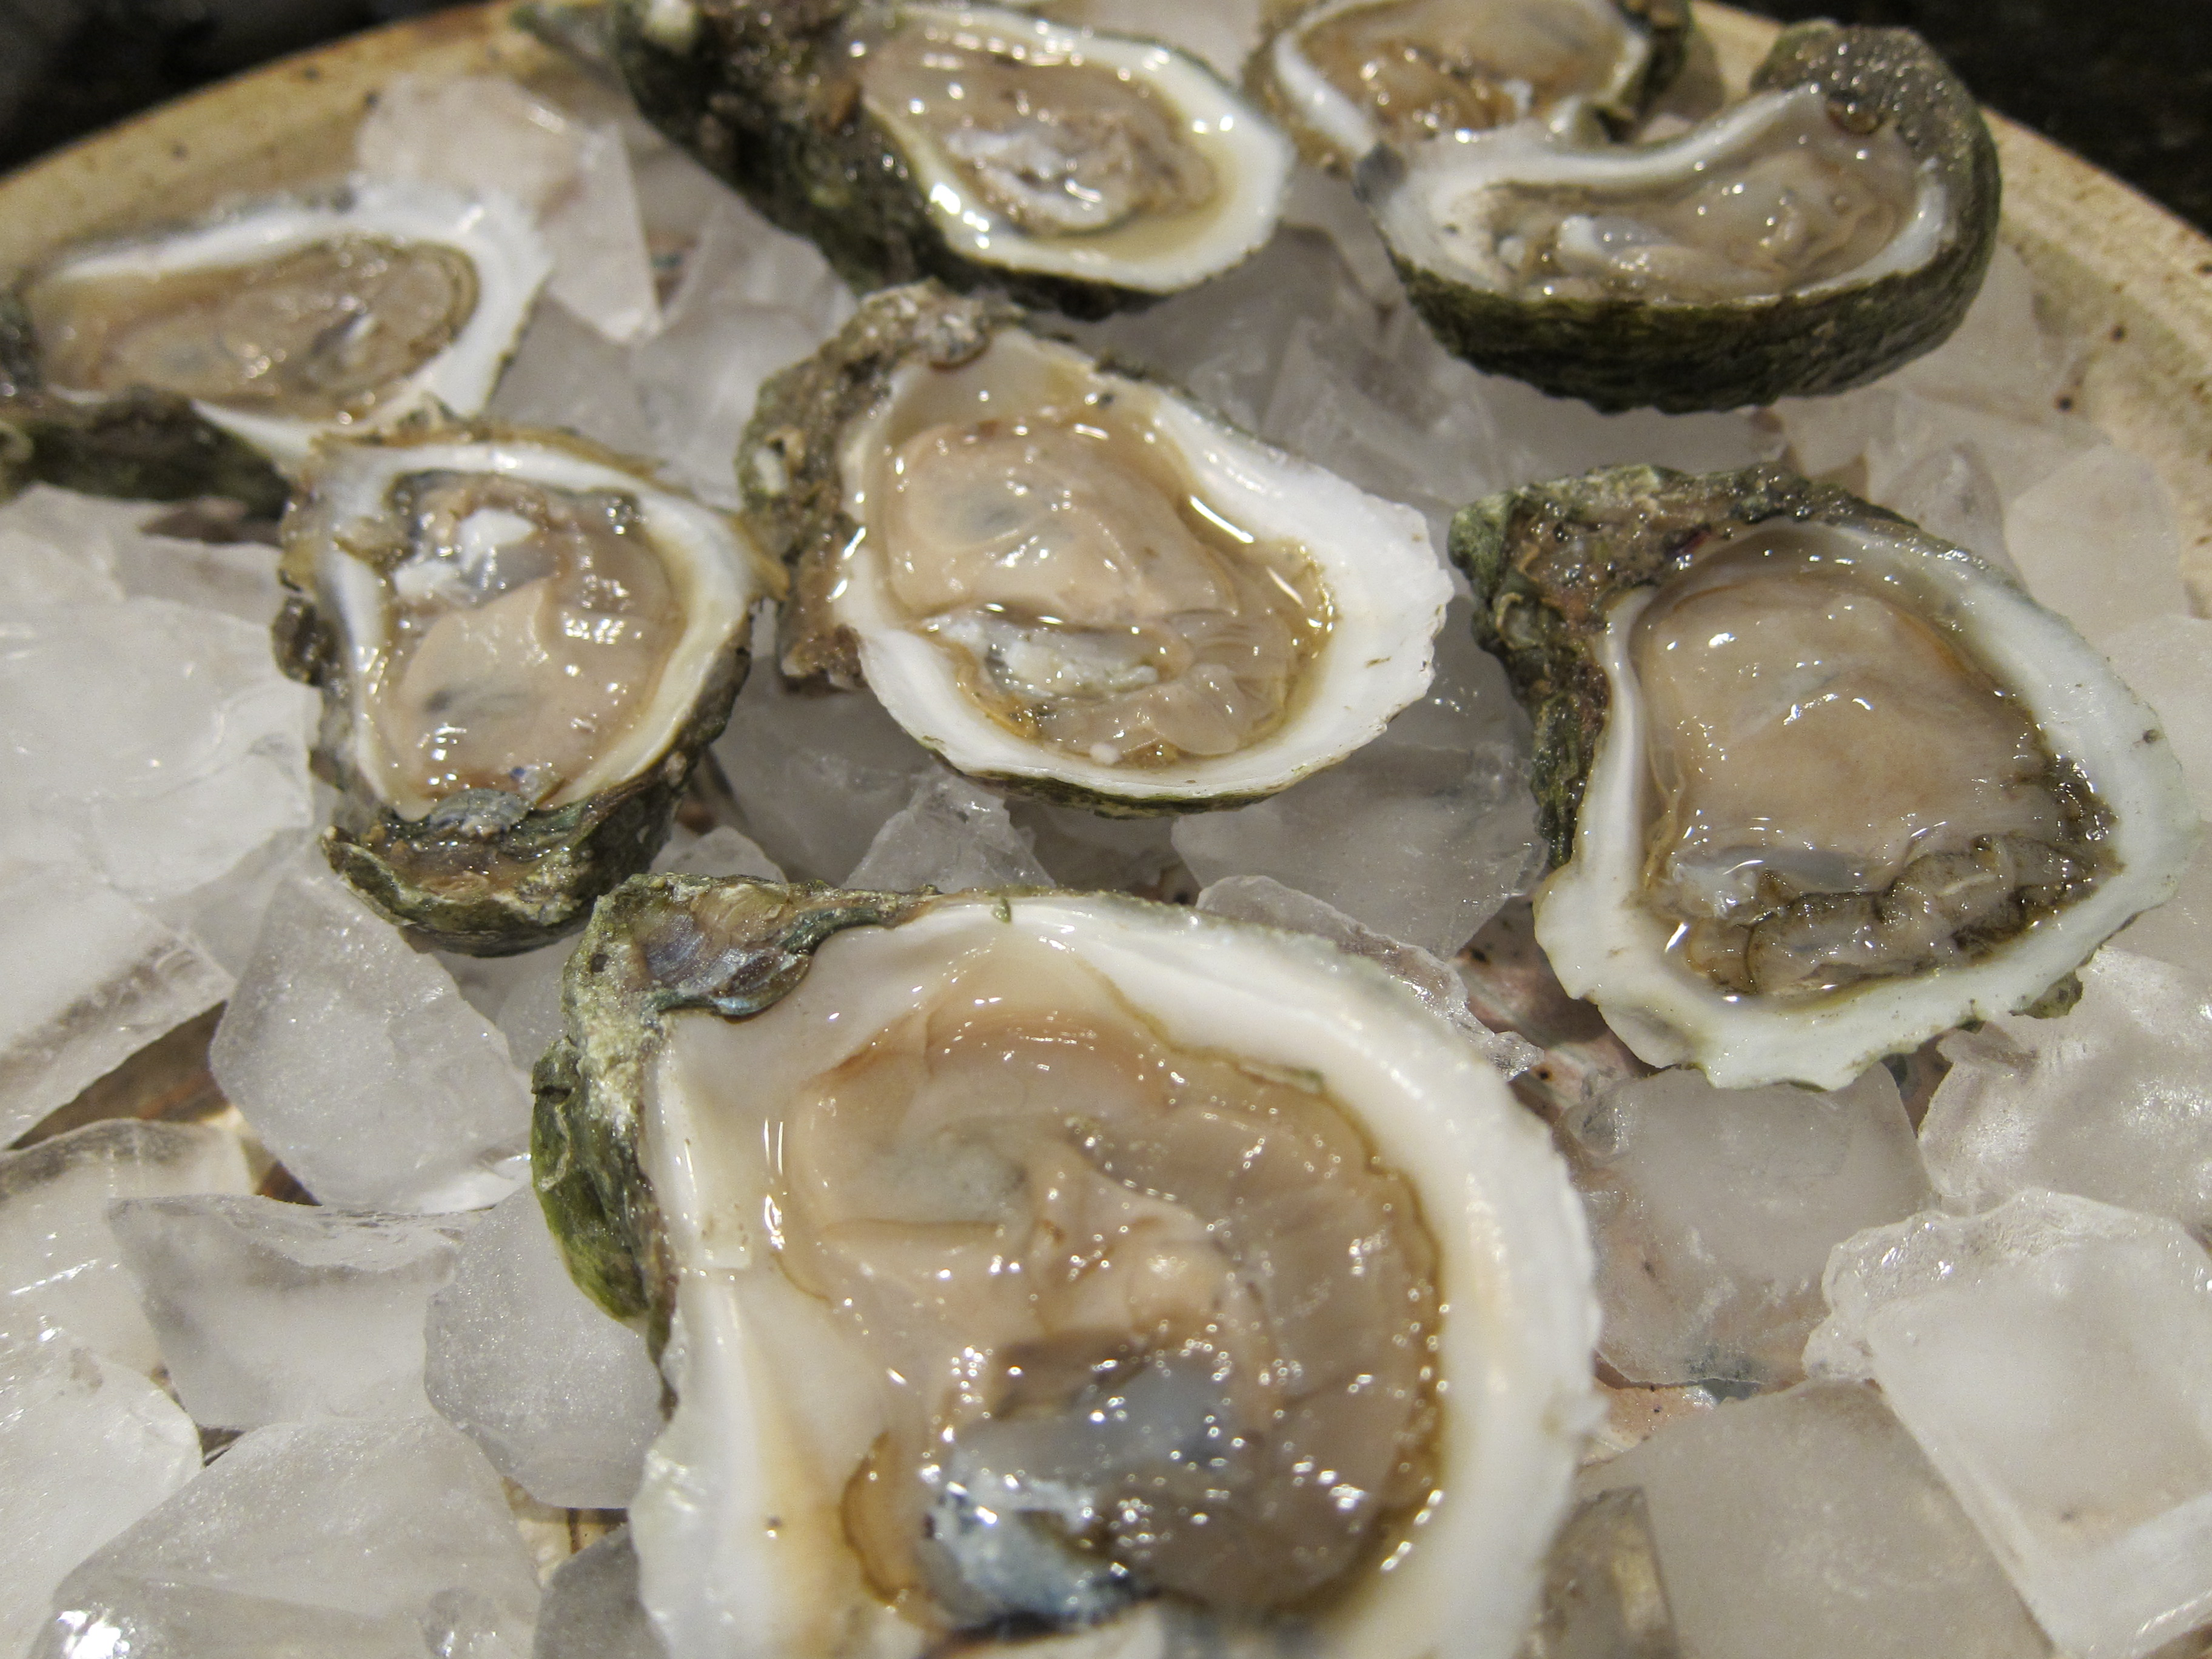 alive oysters with pearls